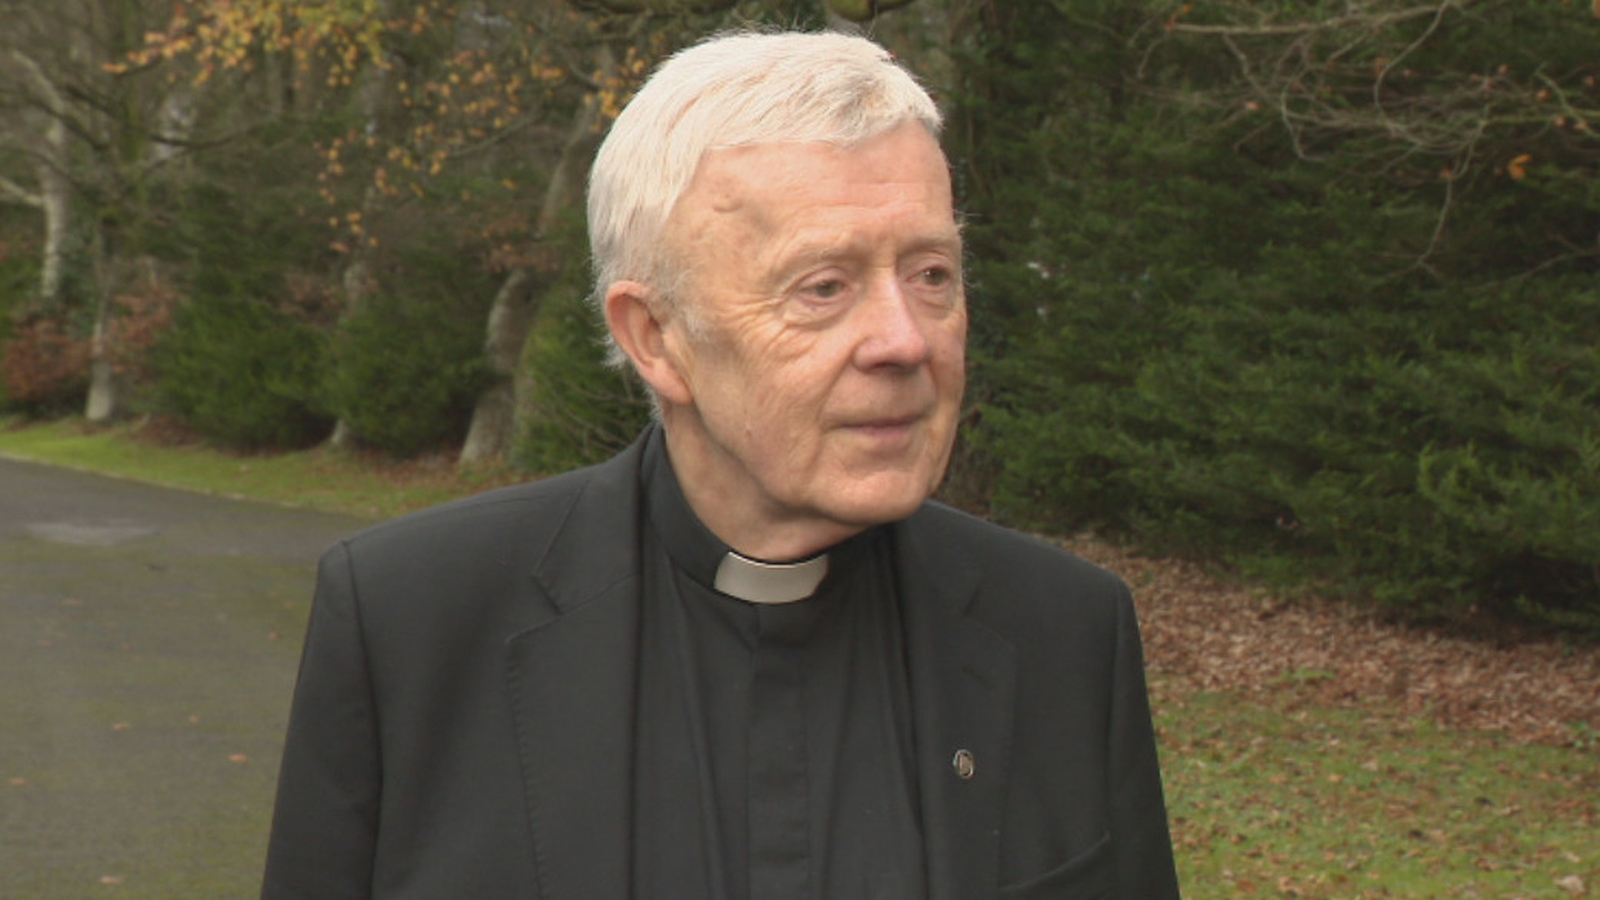 Archbishop of Tuam submits resignation to Vatican